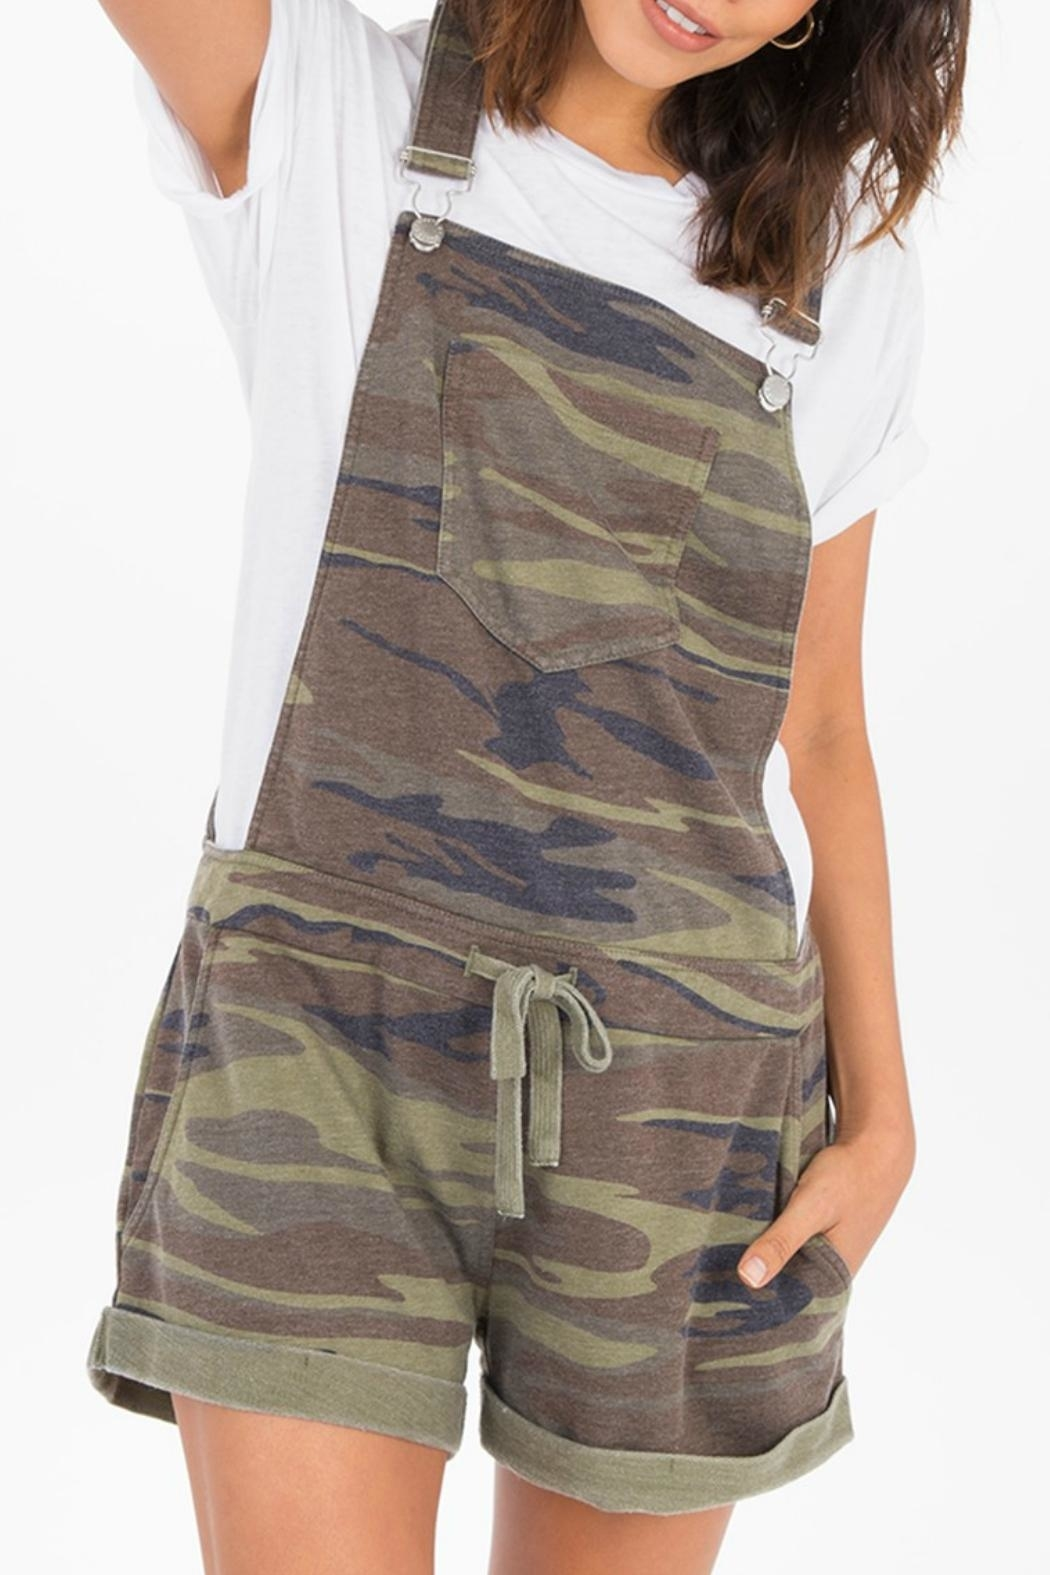 z supply Camo Short Overalls - Back Cropped Image